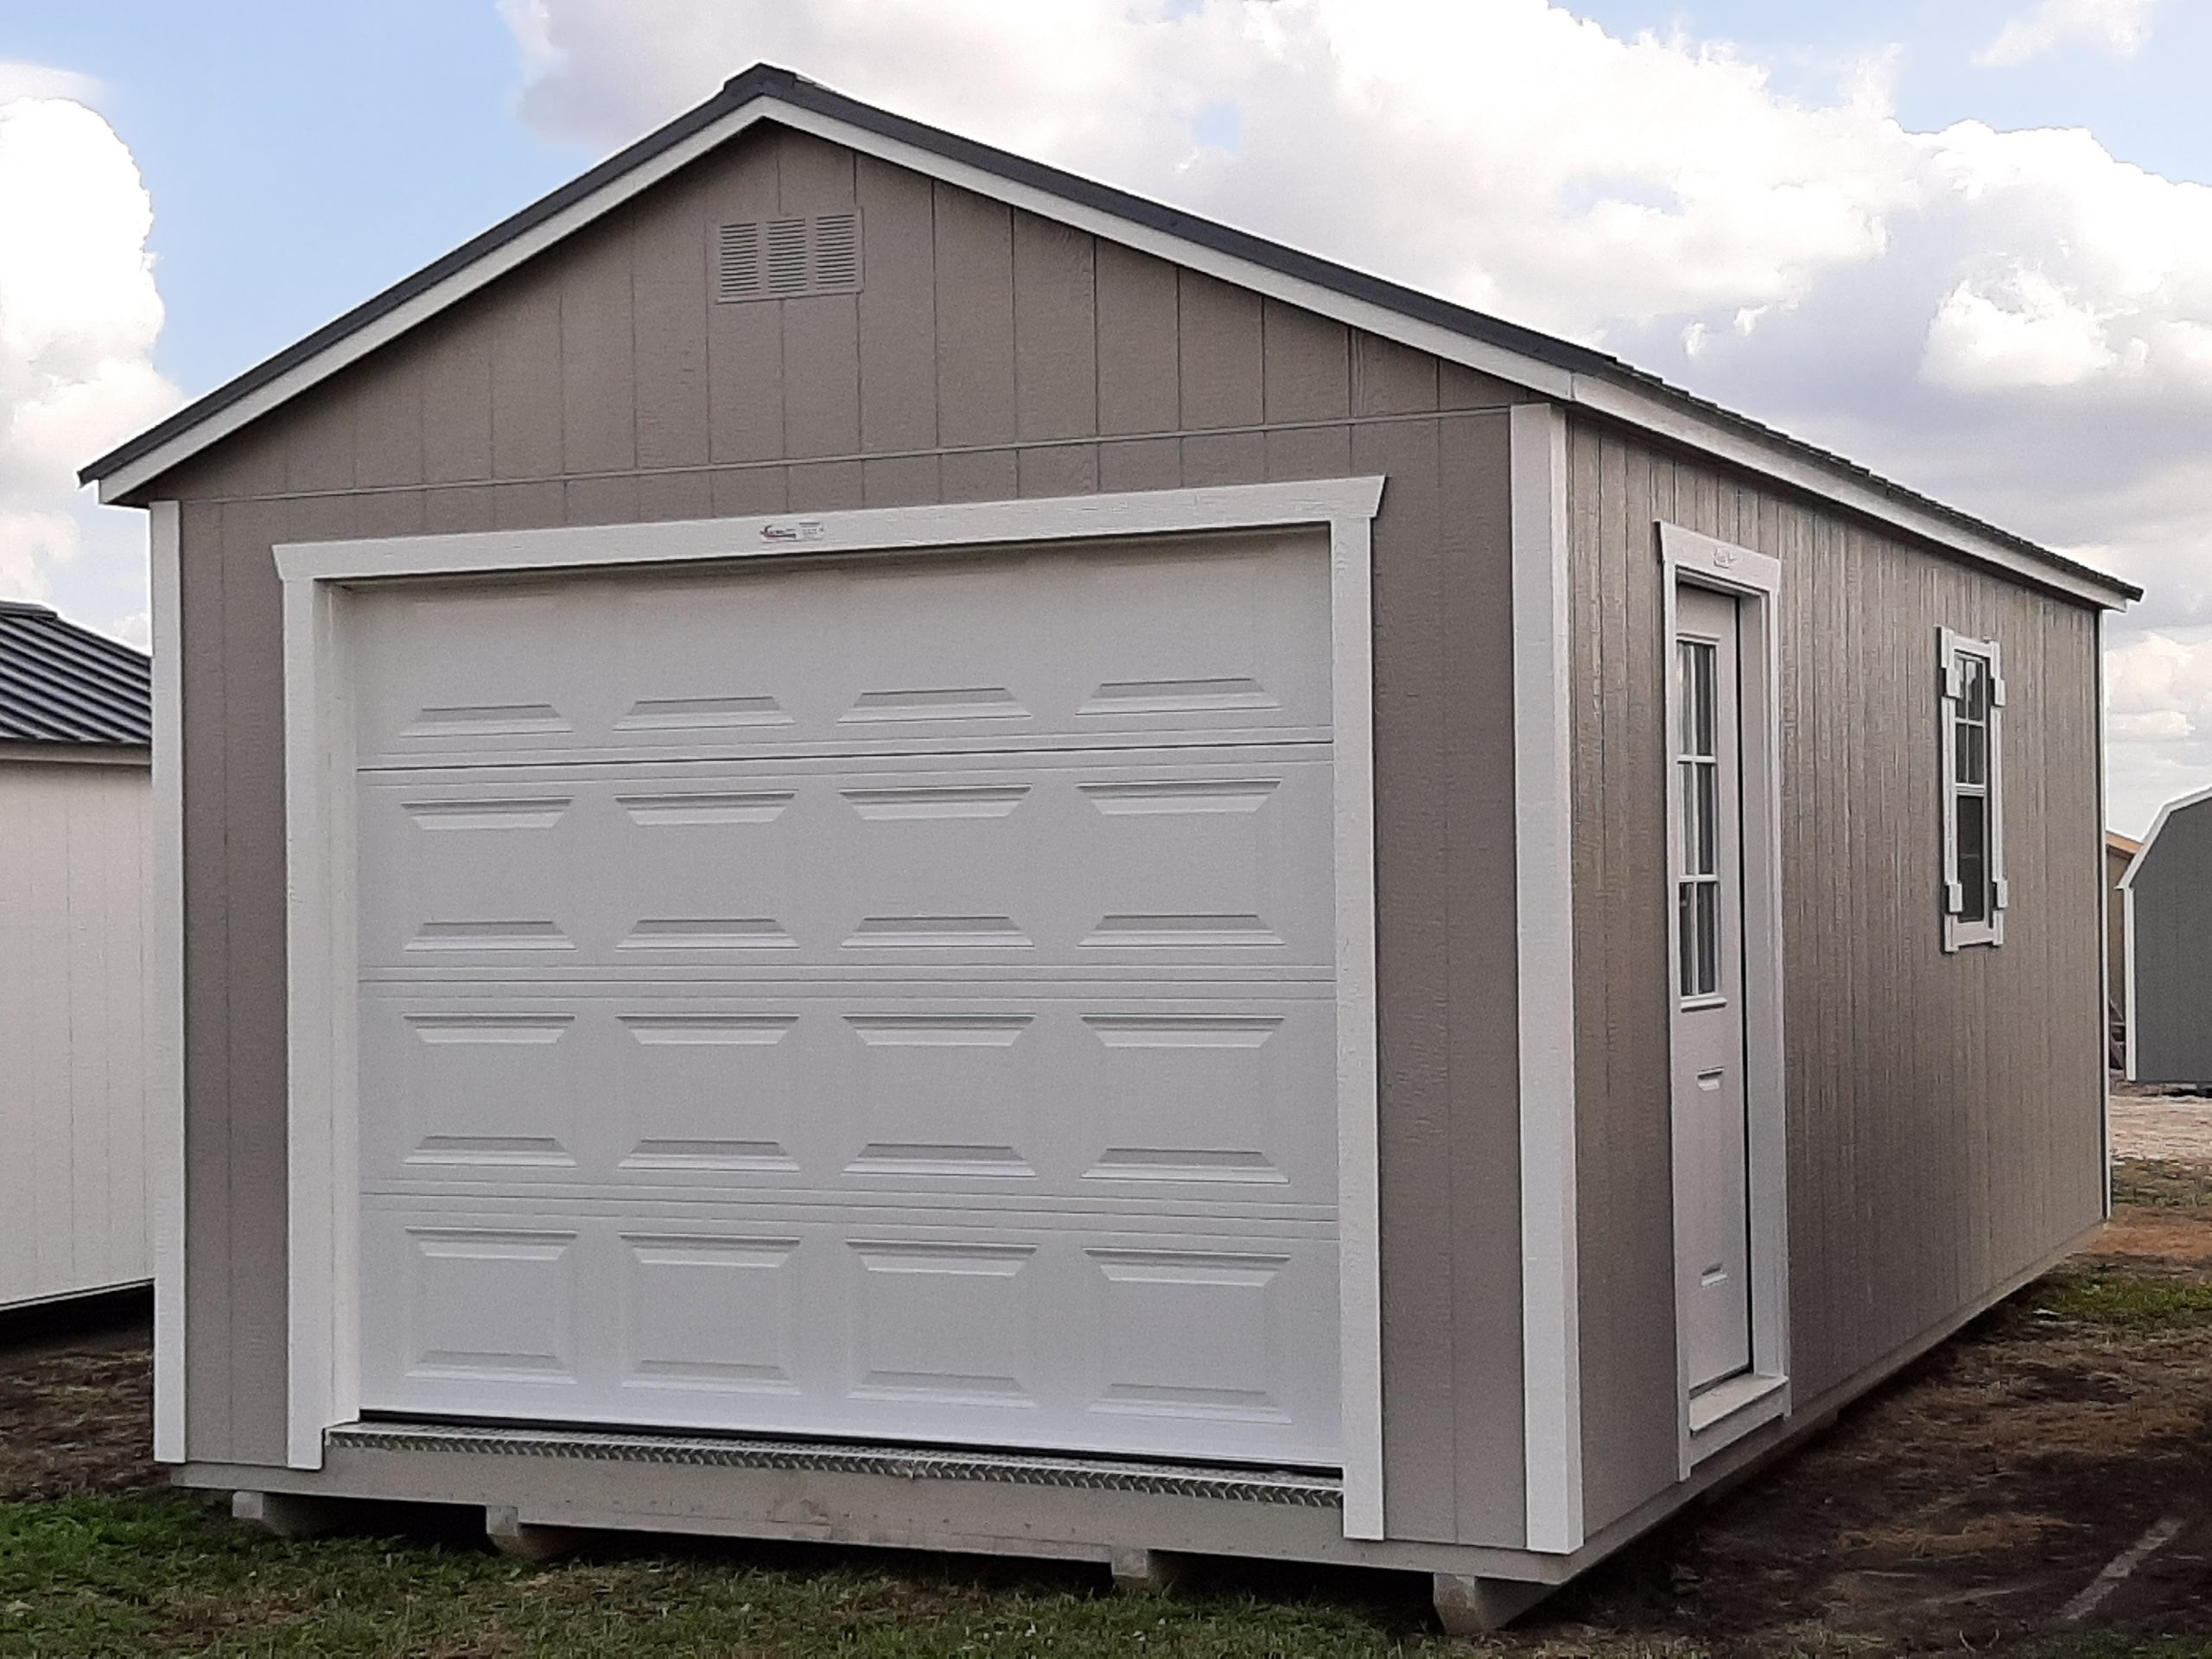 12x24 Elite Portable Garage #1588 Image